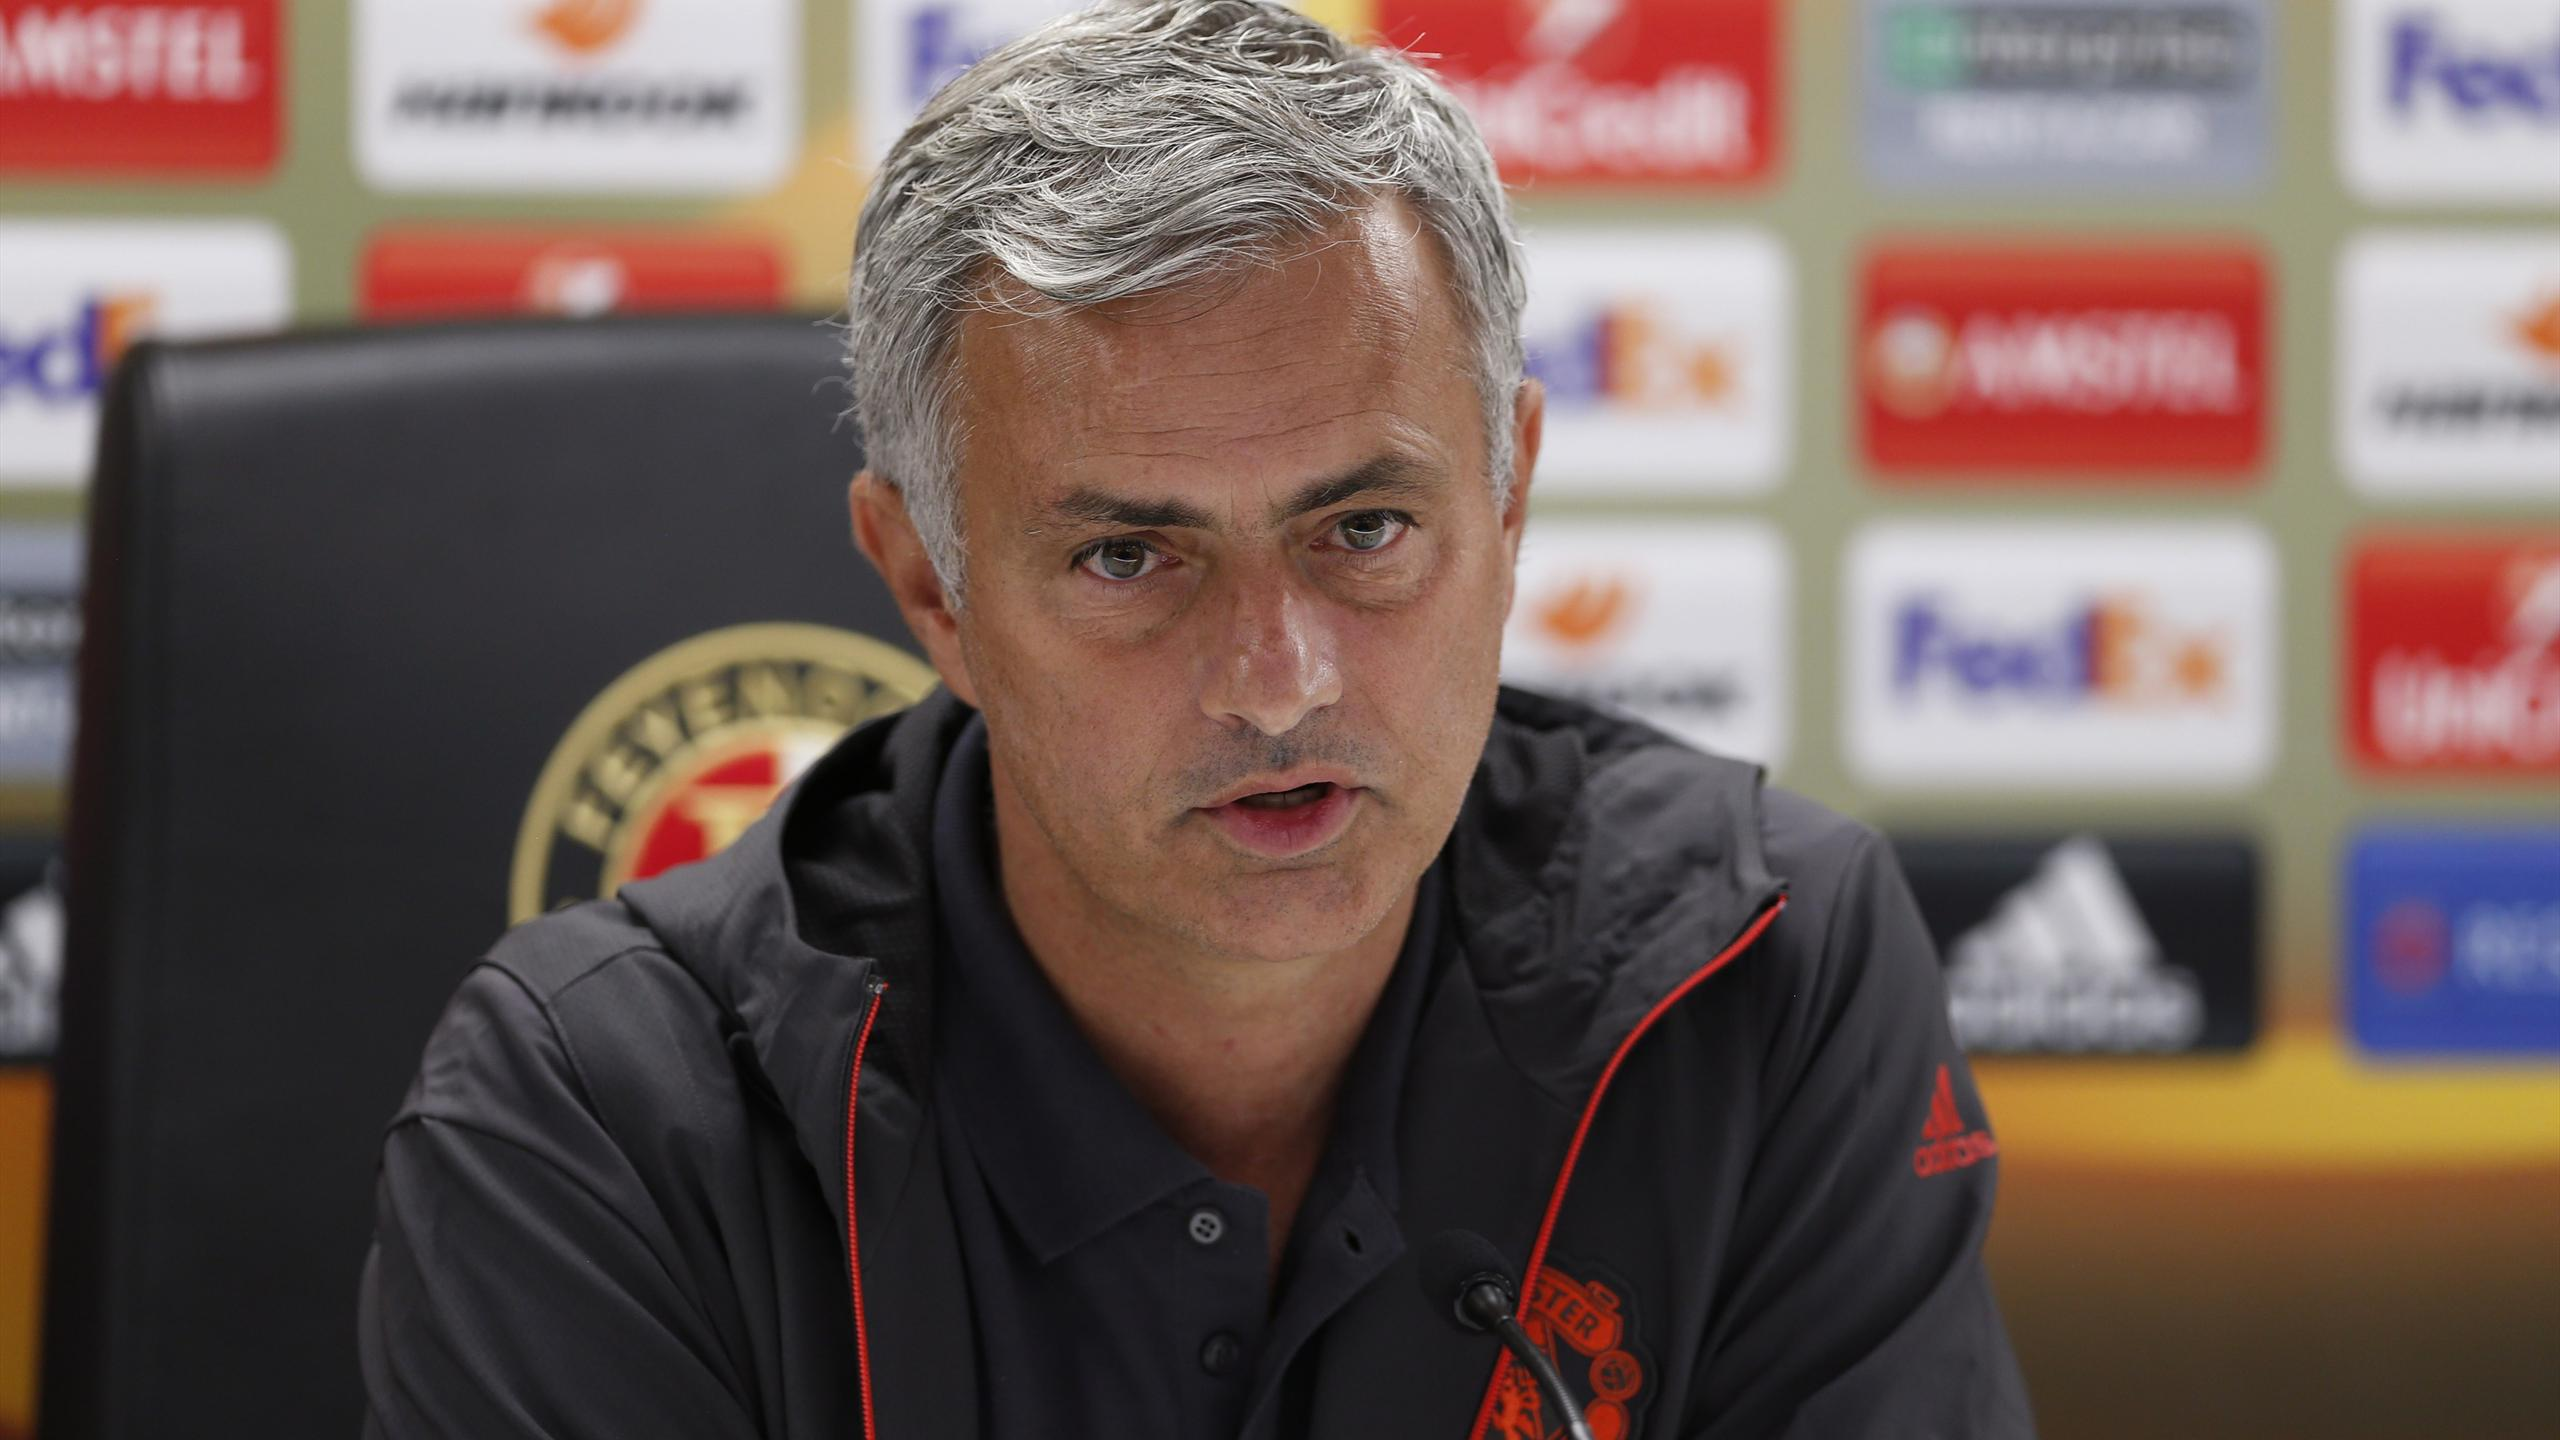 Manchester United manager Jose Mourinho during the press conference.